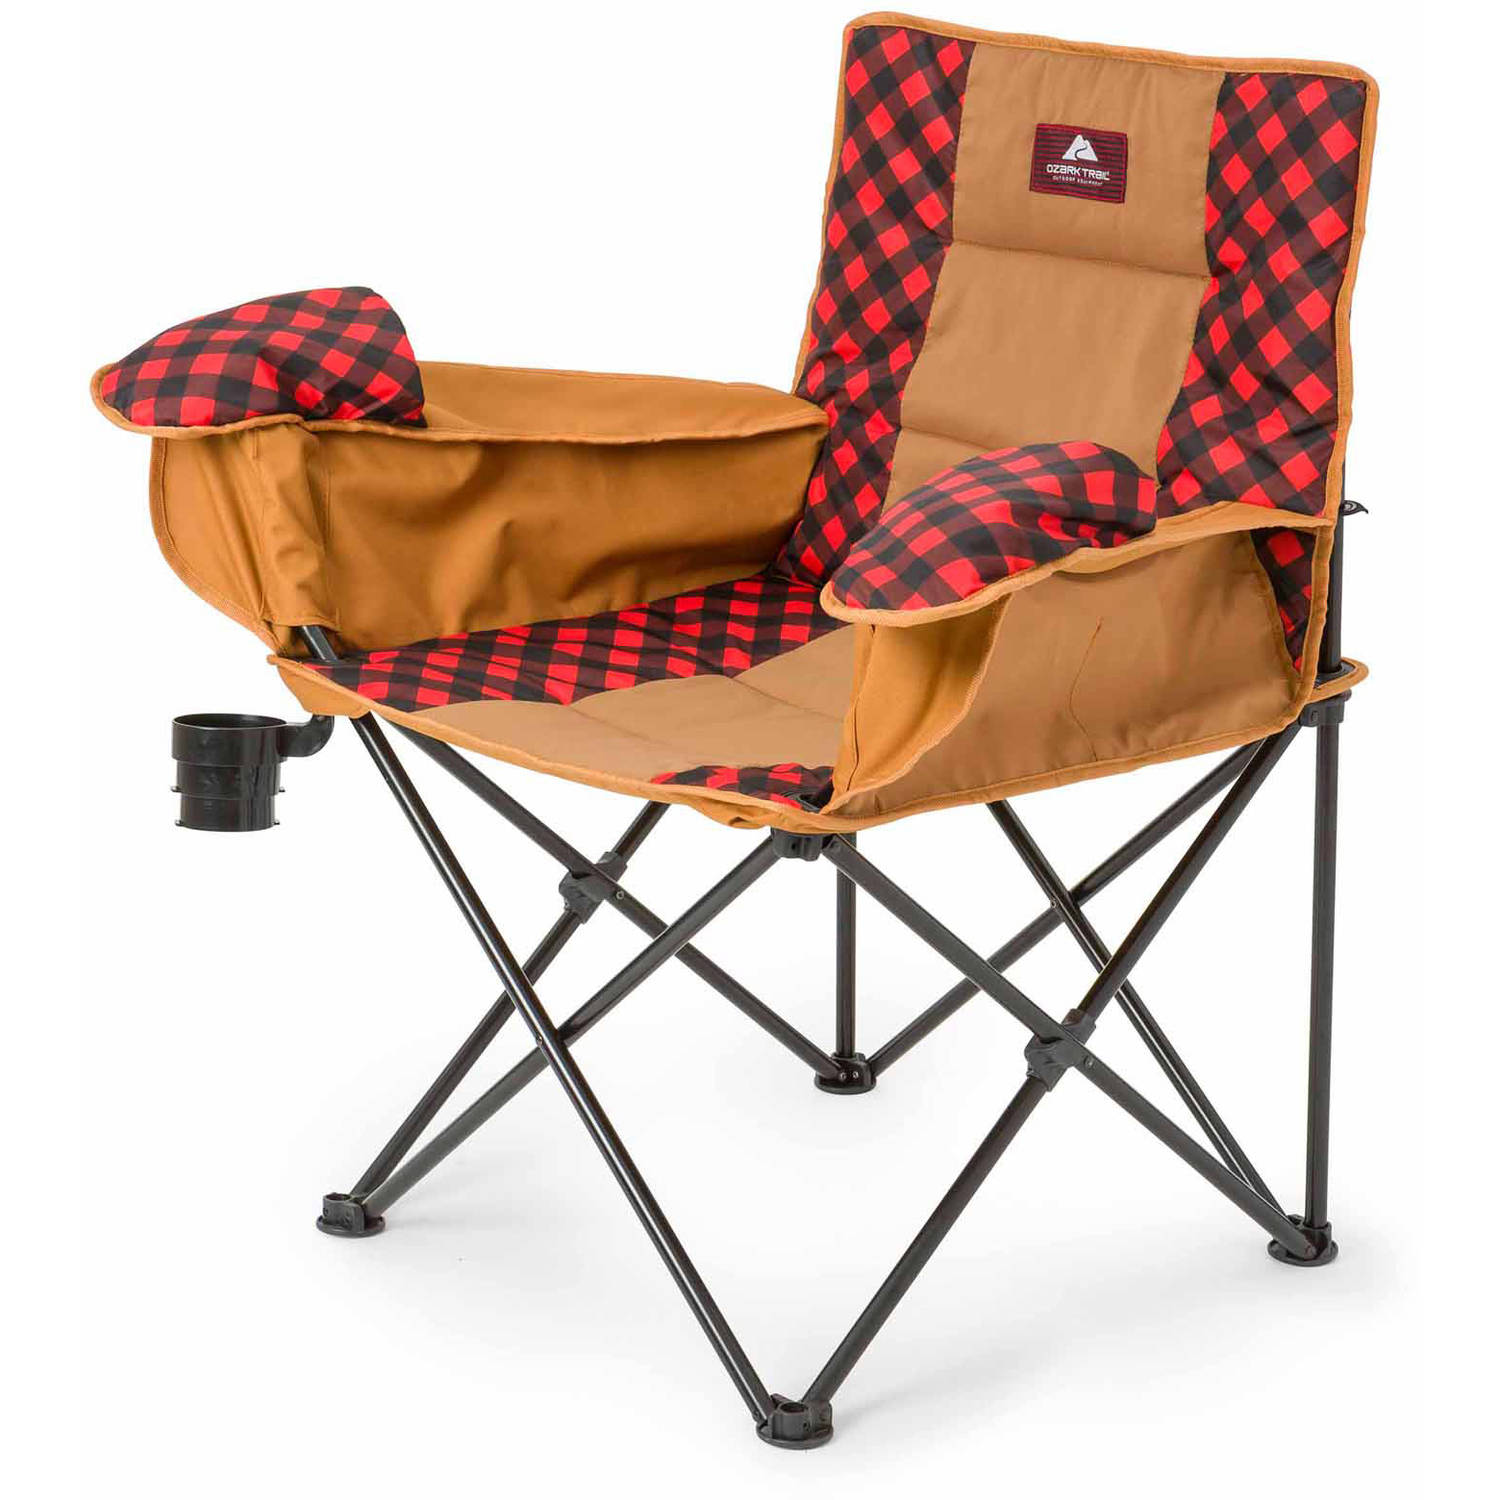 ozark trail folding chair replacement parts sam maloof walmart